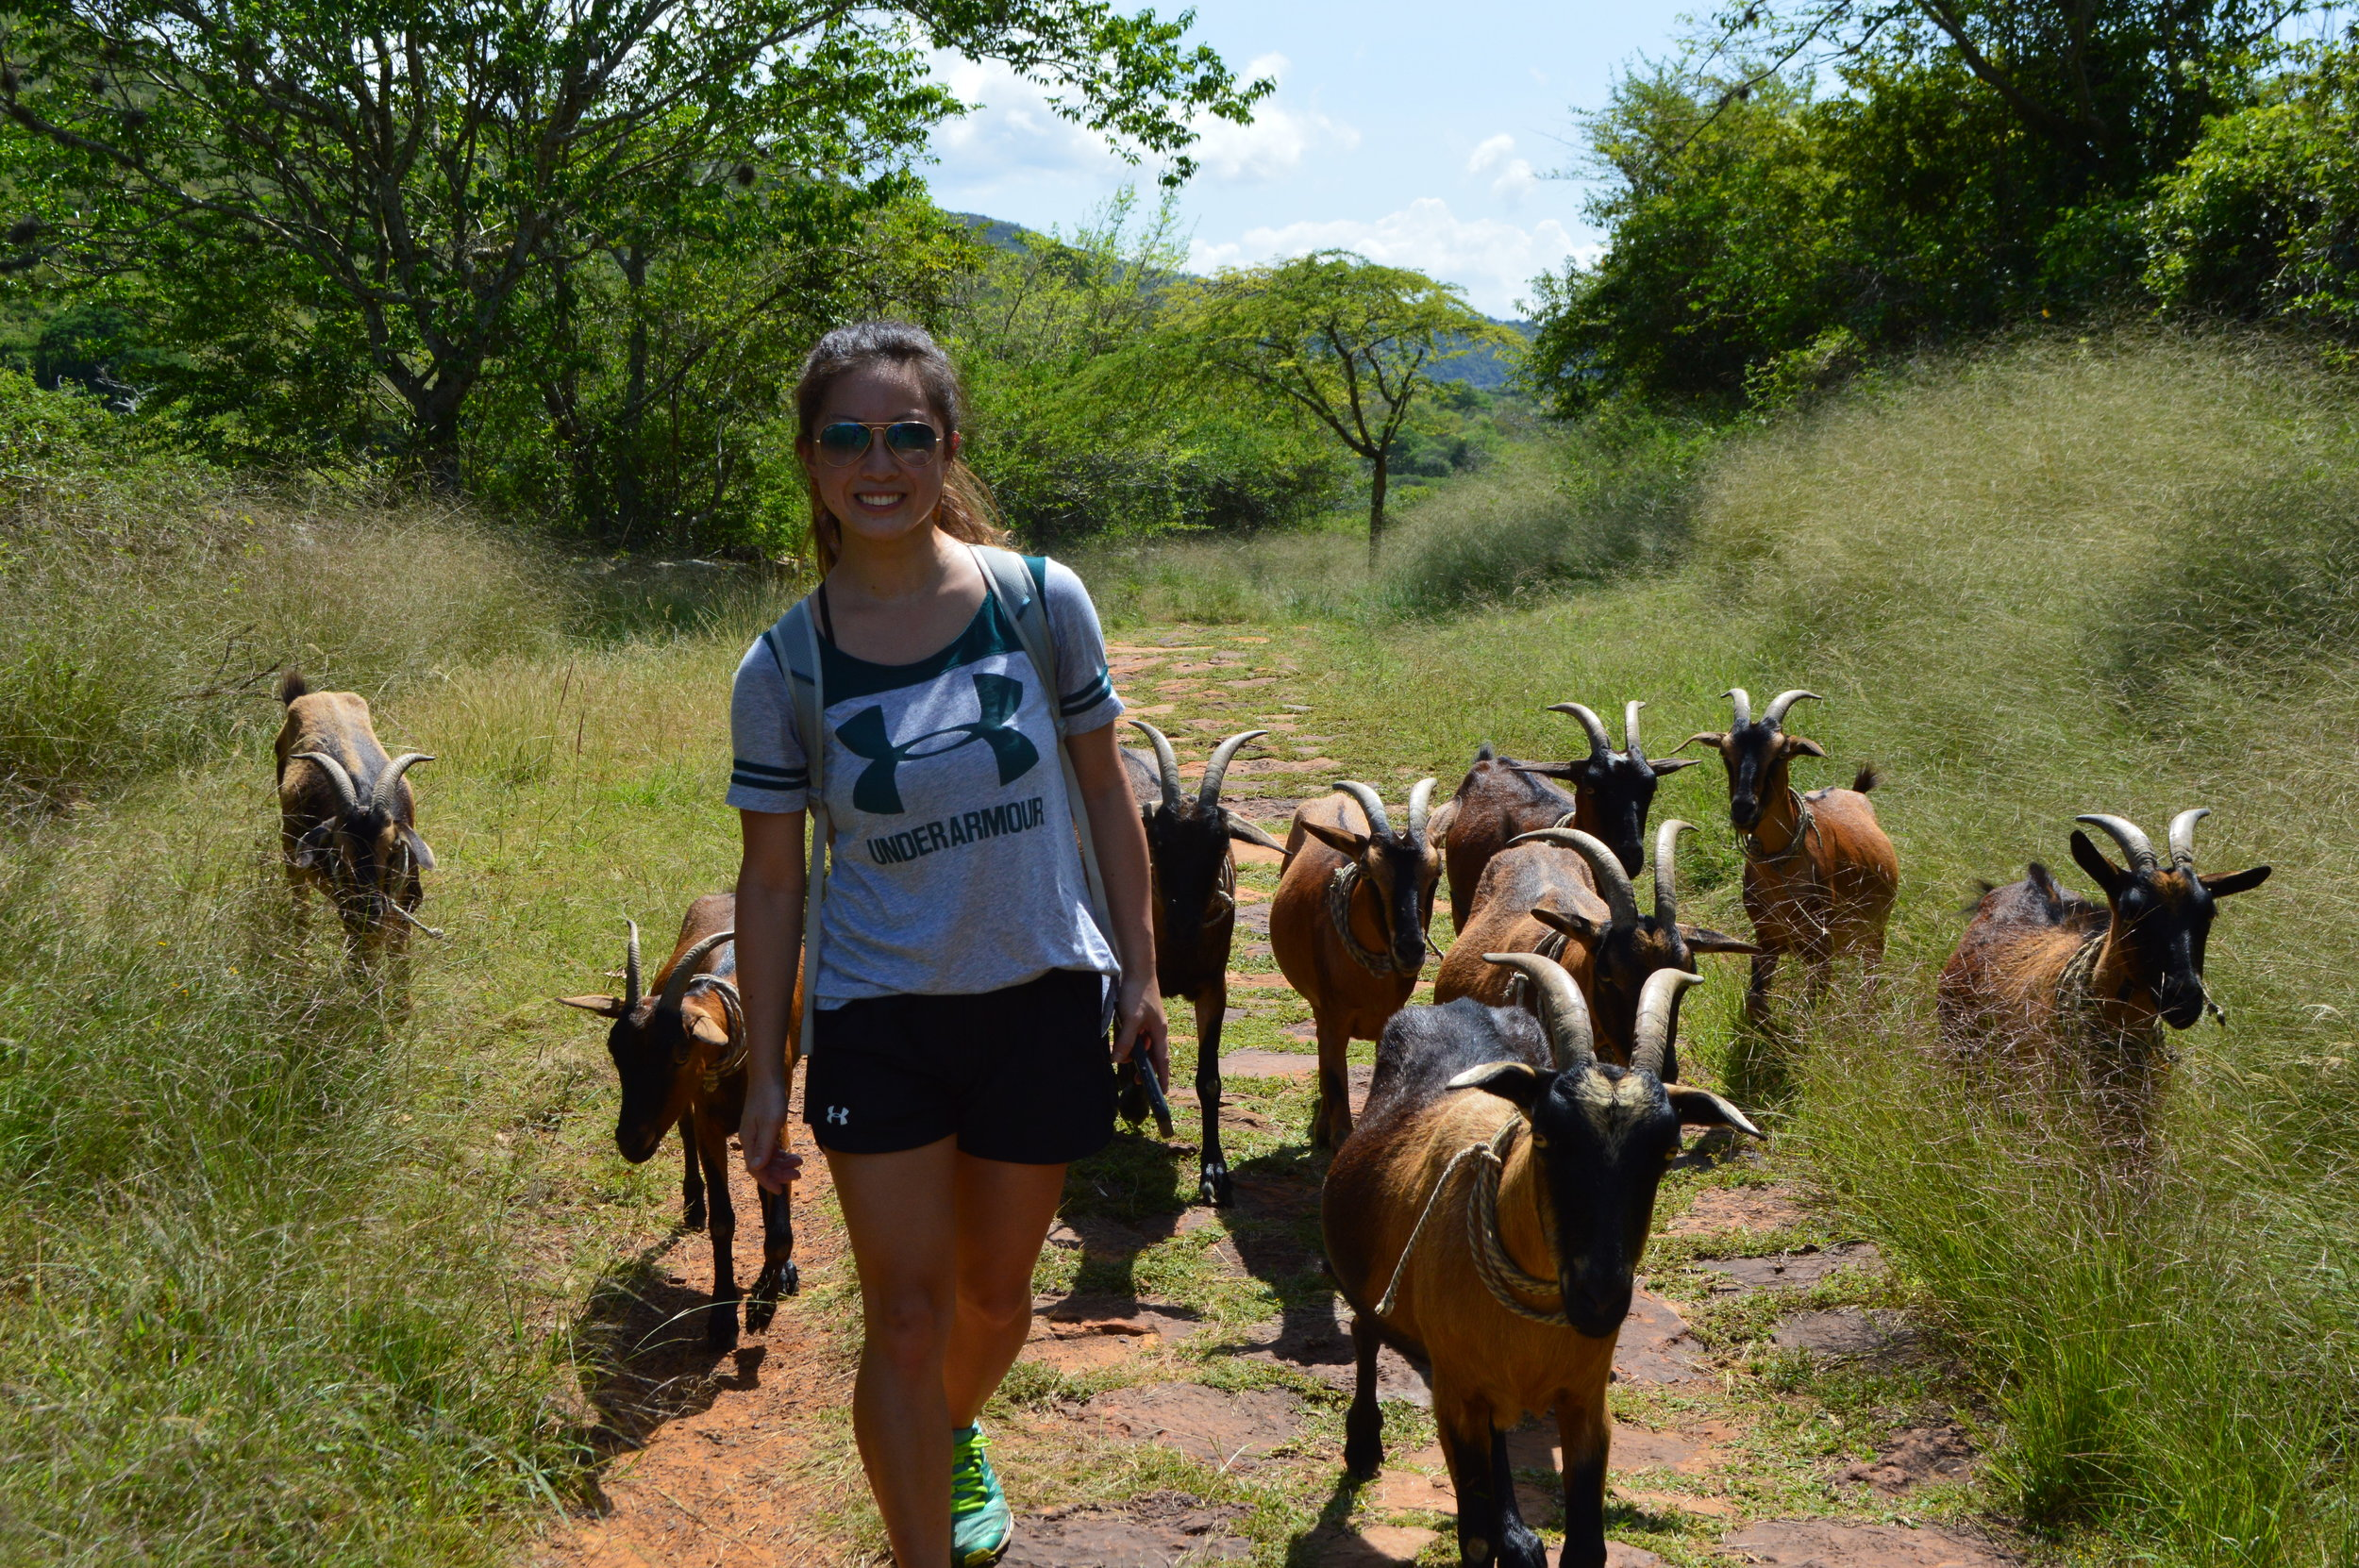 These goats walked quite a distances with us